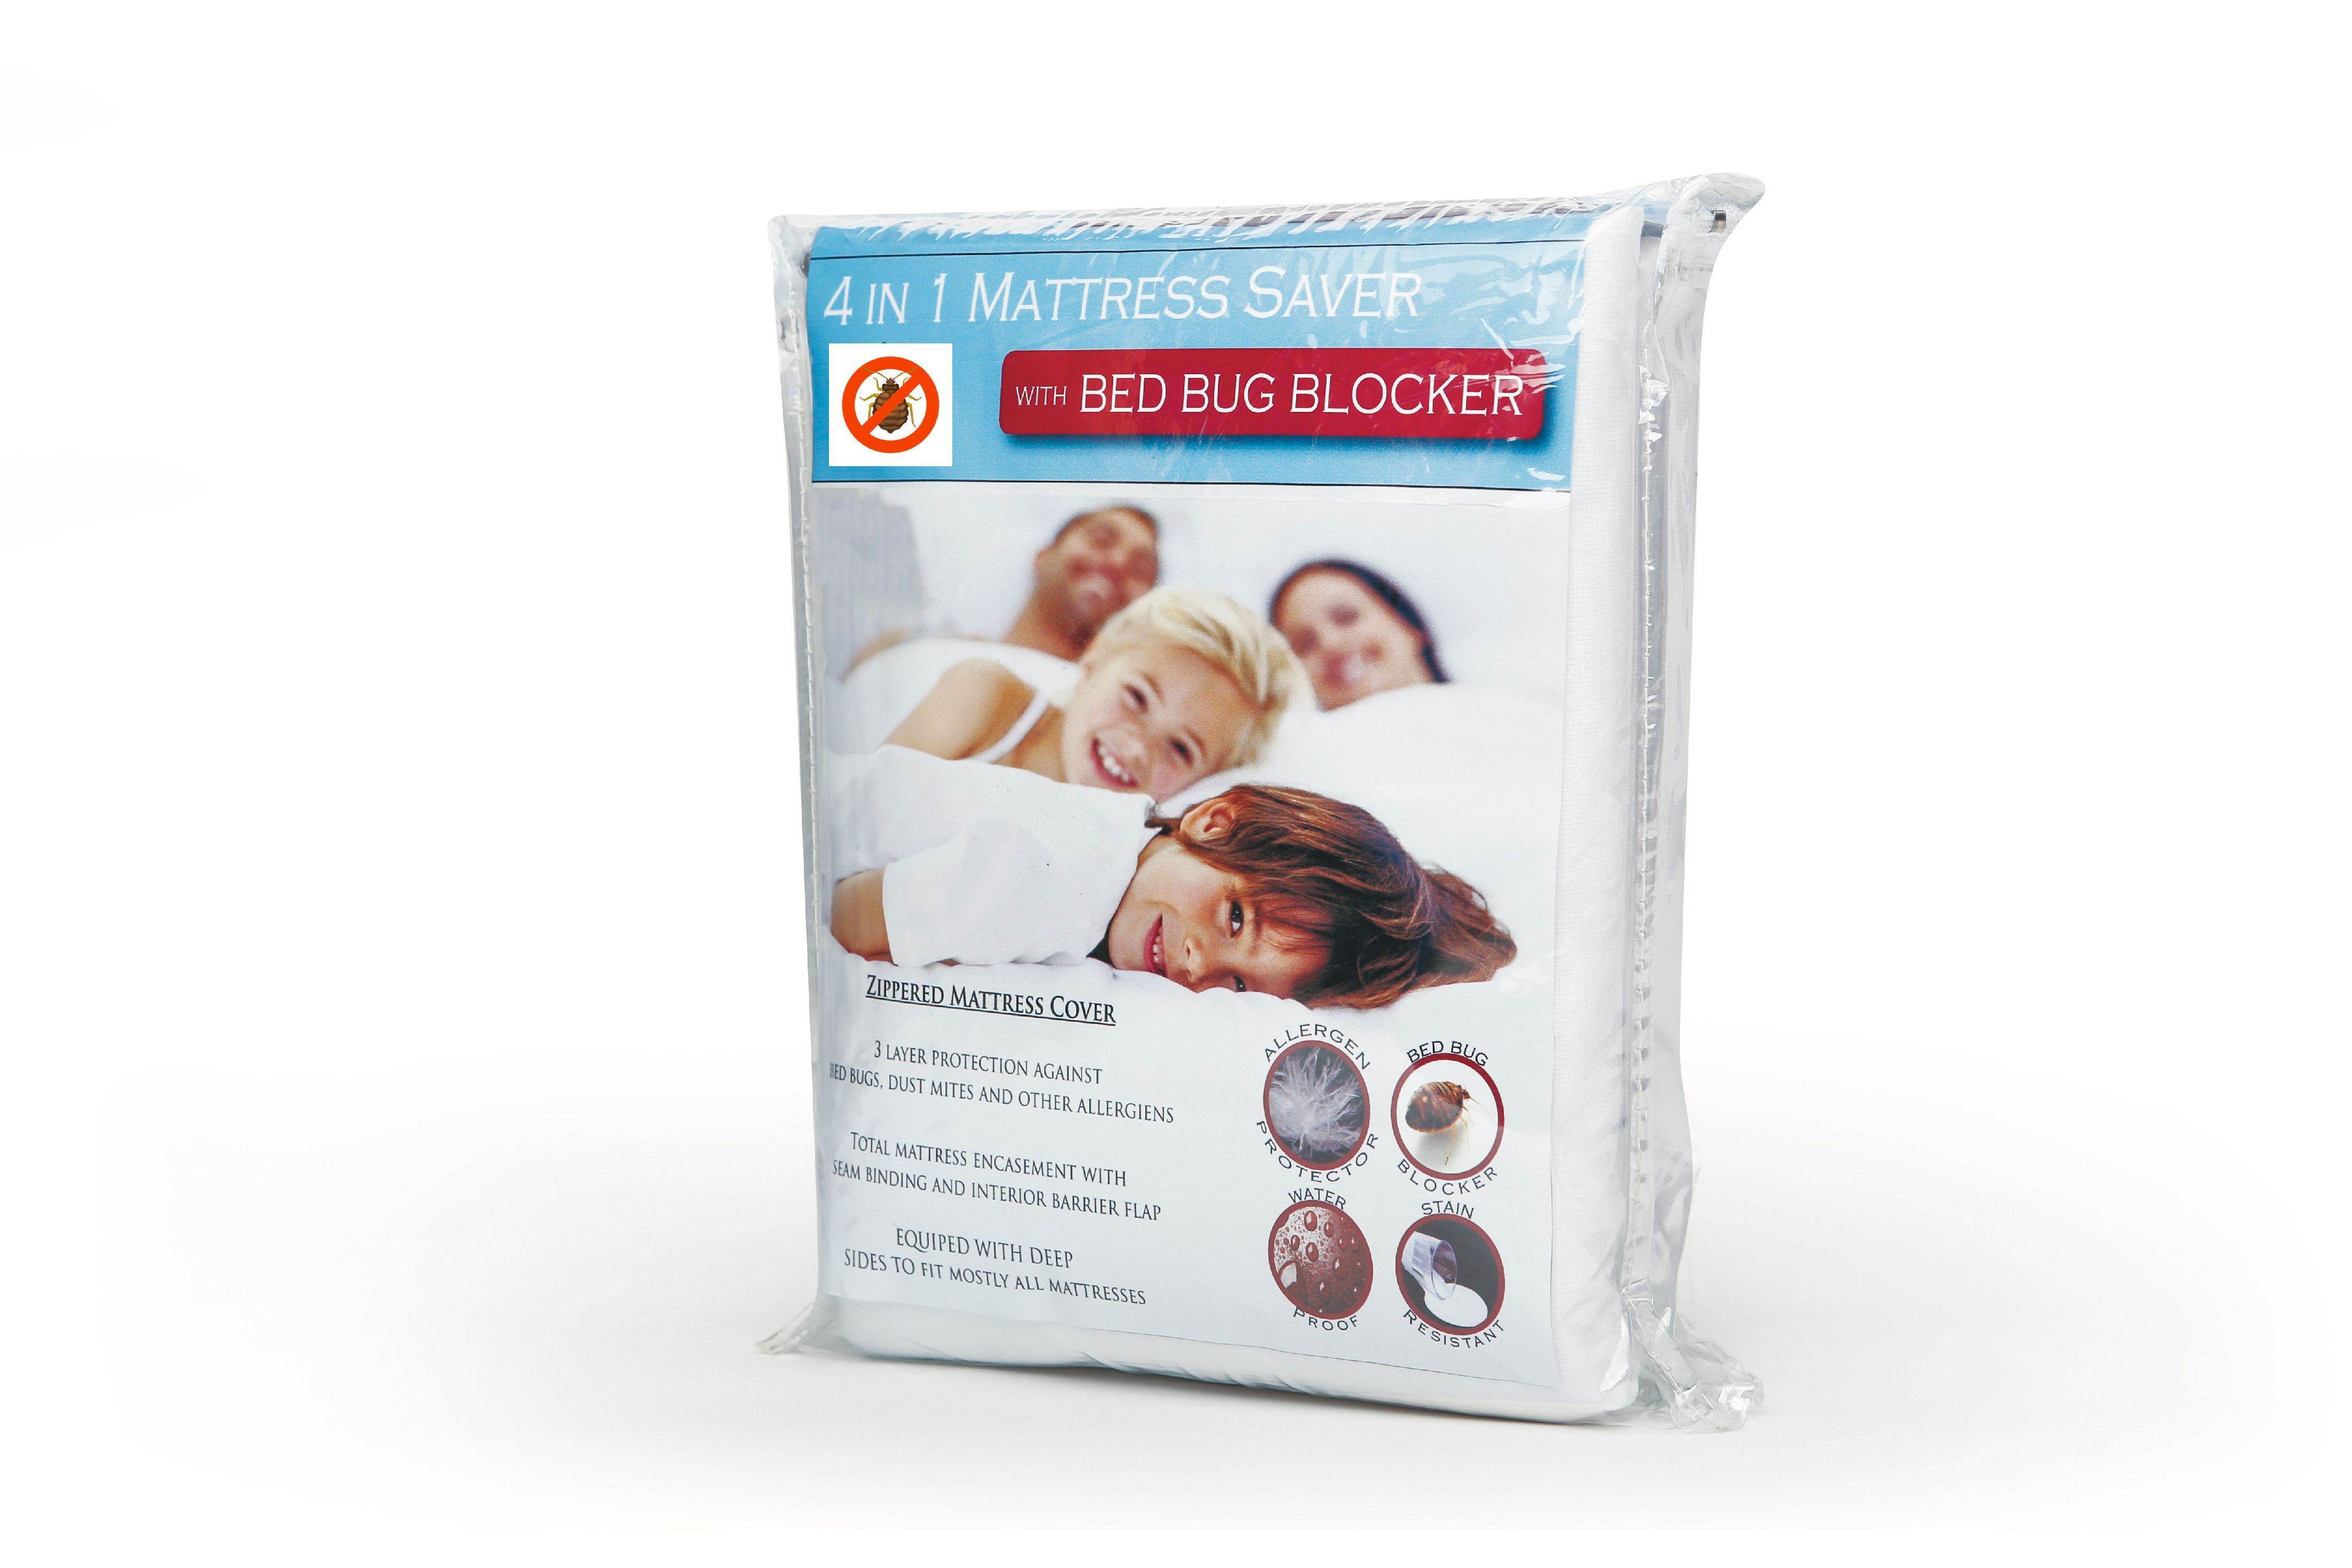 waterproof fabric bedbug zippered mattress cover protector full - Mattress Covers For Bed Bugs